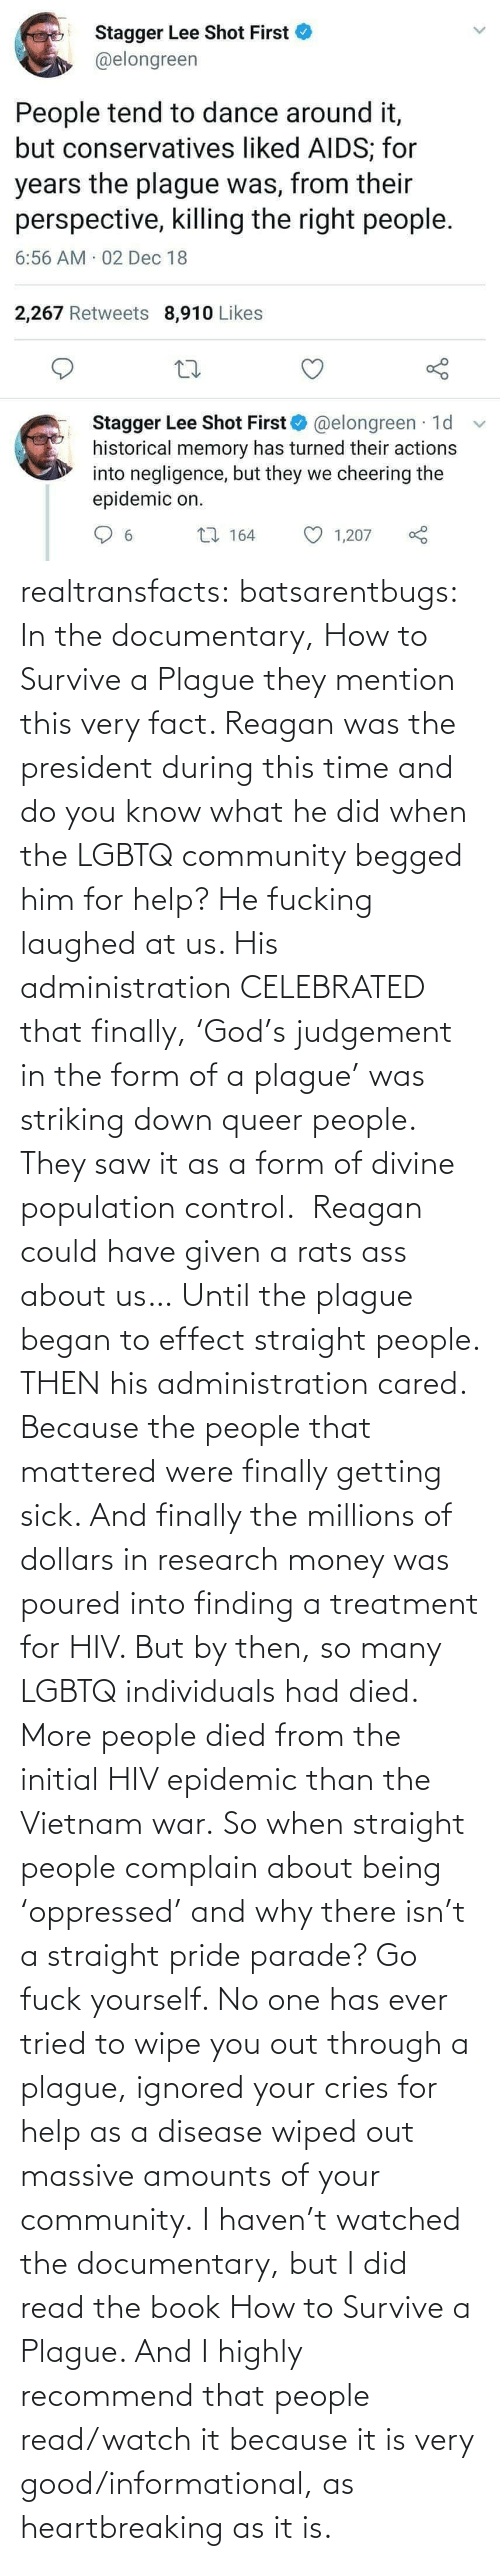 Help: Stagger Lee Shot First  @elongreen  People tend to dance around it,  but conservatives liked AIDS; for  years the plague was, from their  perspective, killing the right people.  6:56 AM 02 Dec 18  2,267 Retweets 8,910 Likes  Stagger Lee Shot First O @elongreen · 1d  historical memory has turned their actions  into negligence, but they we cheering the  epidemic on.  27 164  1,207  6. realtransfacts:  batsarentbugs:  In the documentary, How to Survive a Plague they mention this very fact. Reagan was the president during this time and do you know what he did when the LGBTQ community begged him for help? He fucking laughed at us. His administration CELEBRATED that finally, 'God's judgement in the form of a plague' was striking down queer people.  They saw it as a form of divine population control.  Reagan could have given a rats ass about us… Until the plague began to effect straight people. THEN his administration cared. Because the people that mattered were finally getting sick. And finally the millions of dollars in research money was poured into finding a treatment for HIV. But by then, so many LGBTQ individuals had died.  More people died from the initial HIV epidemic than the Vietnam war. So when straight people complain about being 'oppressed' and why there isn't a straight pride parade? Go fuck yourself. No one has ever tried to wipe you out through a plague, ignored your cries for help as a disease wiped out massive amounts of your community.  I haven't watched the documentary, but I did read the book  How to Survive a Plague. And I highly recommend that people read/watch it because it is very good/informational, as heartbreaking as it is.